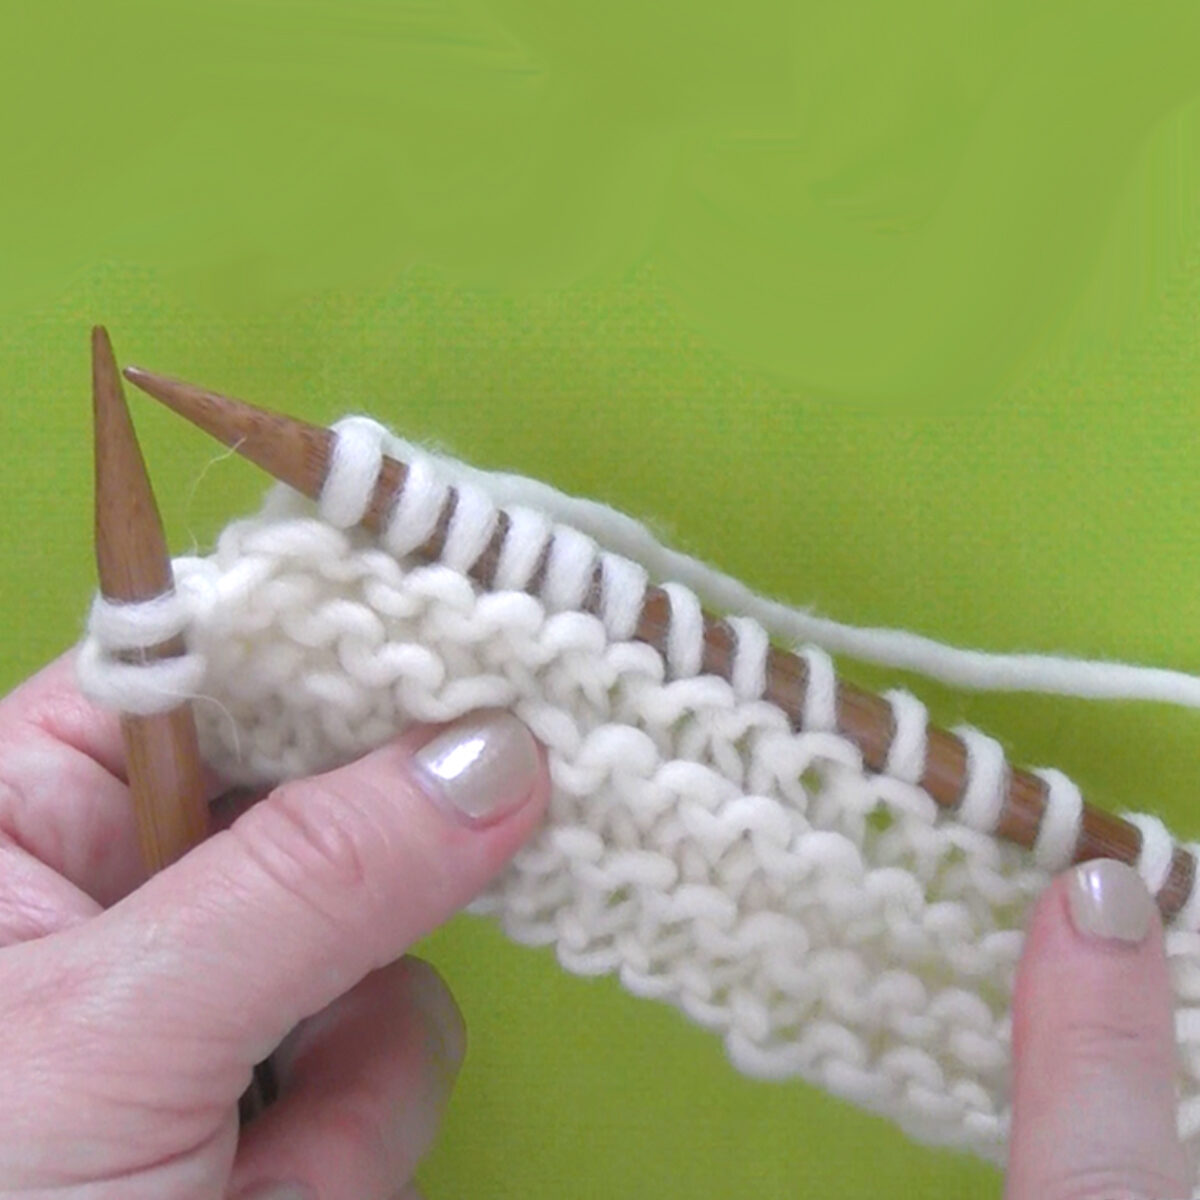 knitted swatch of garter stitch on knitting needles in white color yarn held by hands.